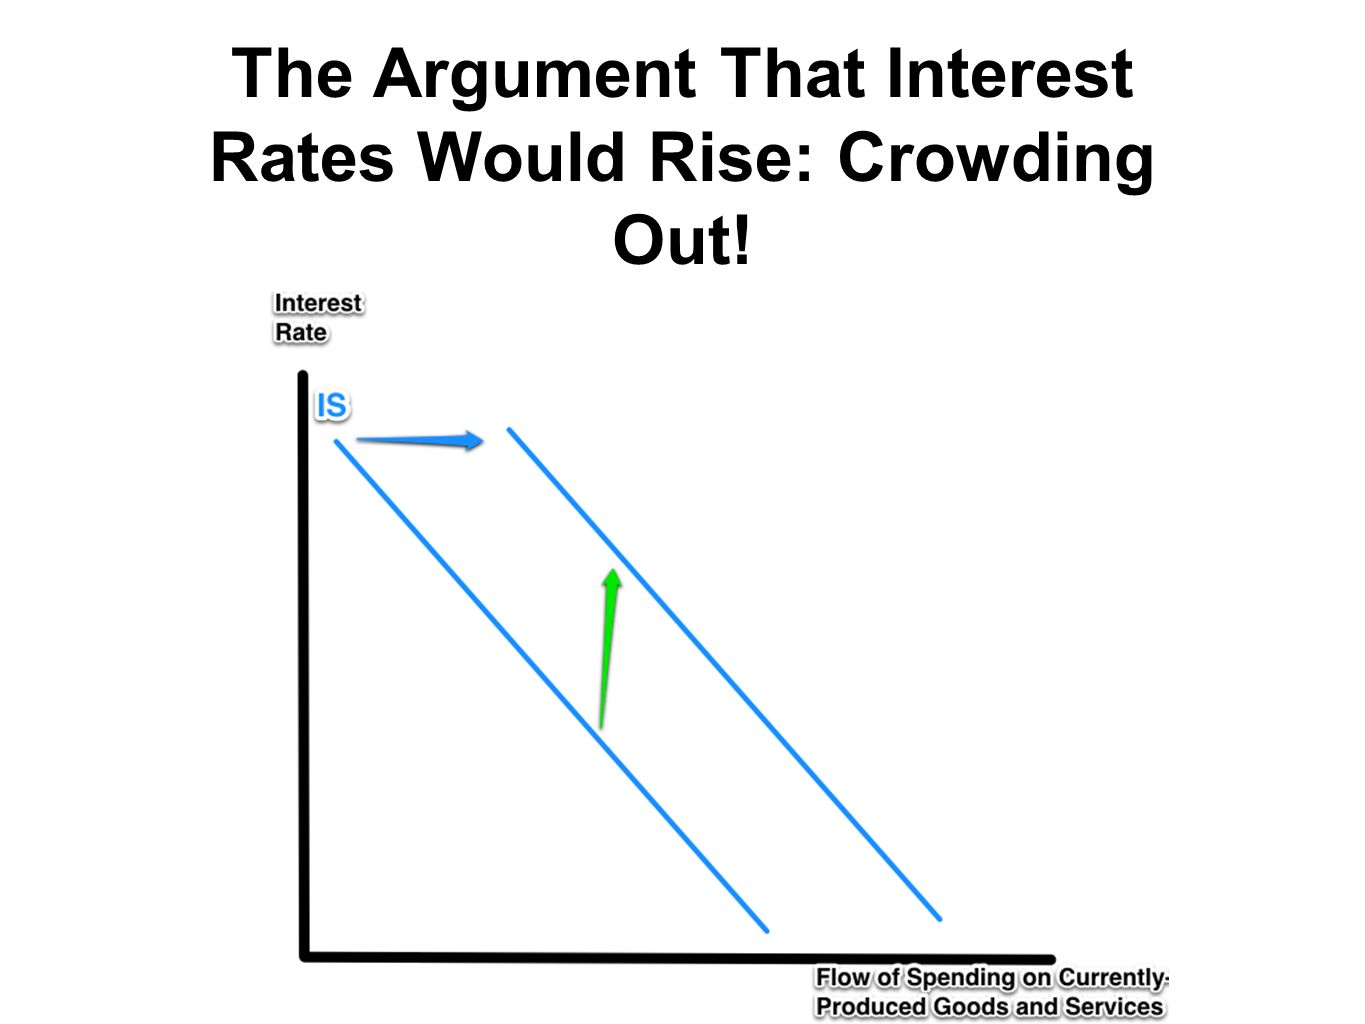 The Argument That Interest Rates Would Rise: Crowding Out!